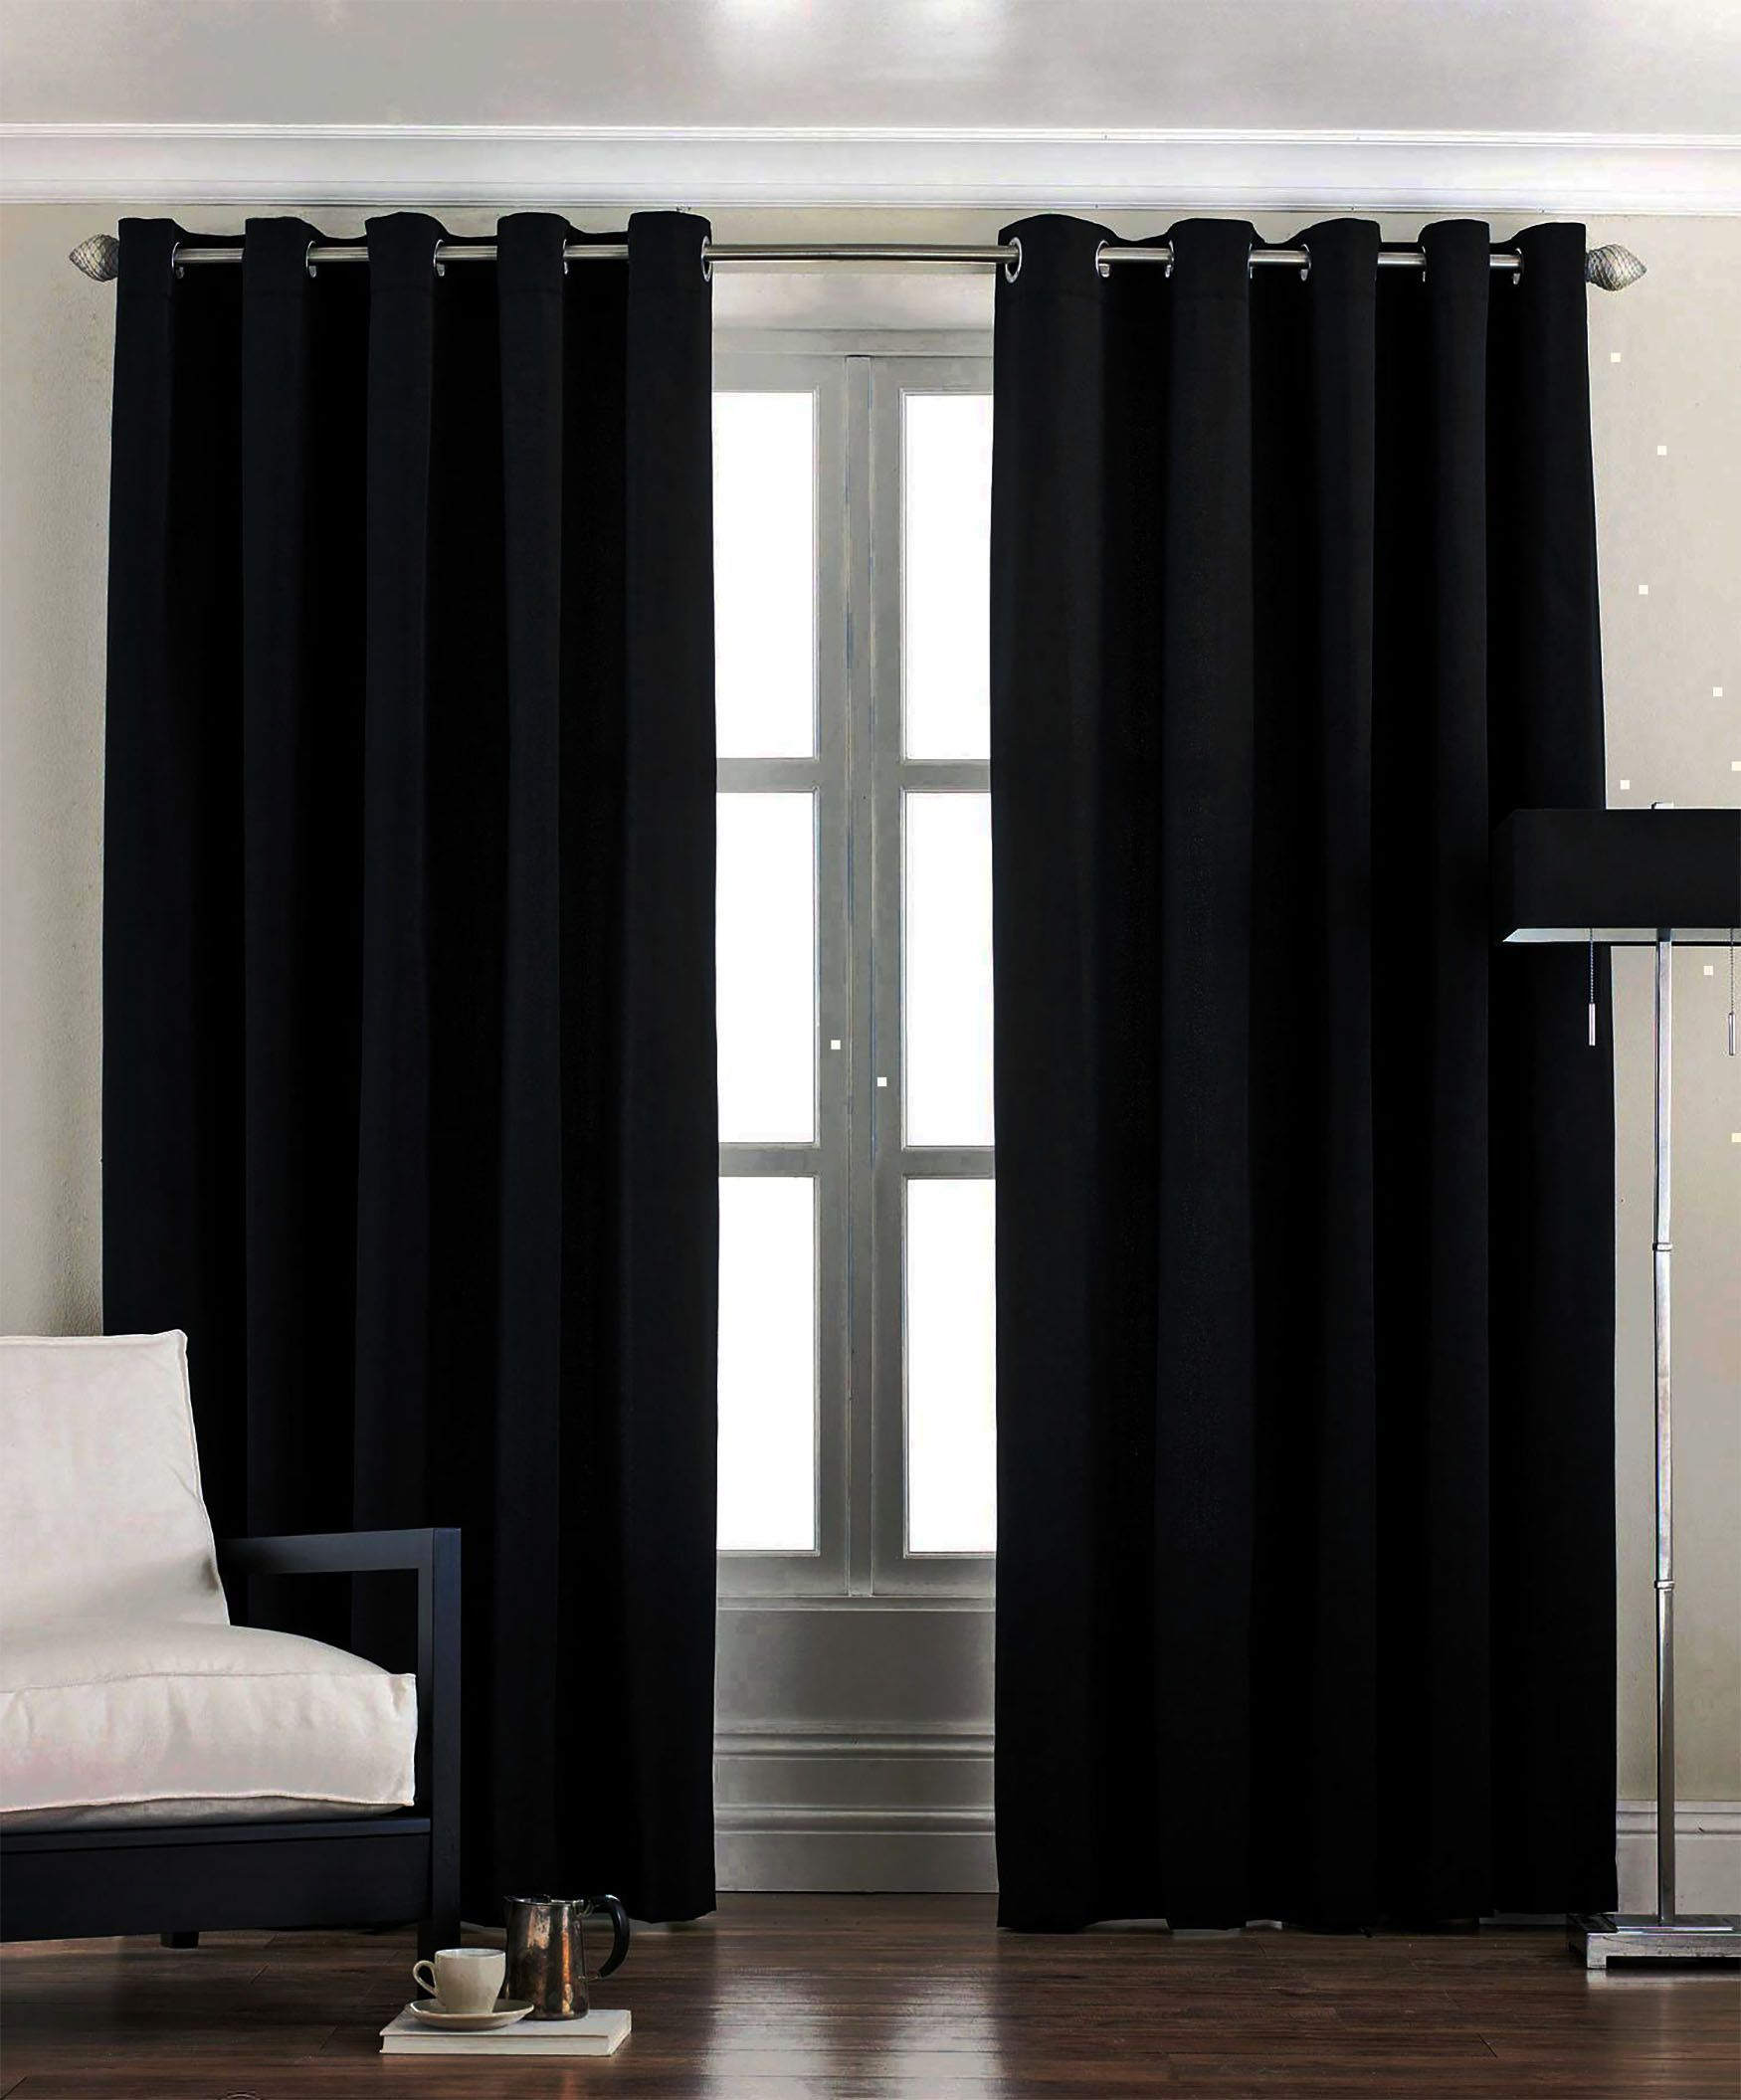 Curtain models u blinds latest fashion trends in